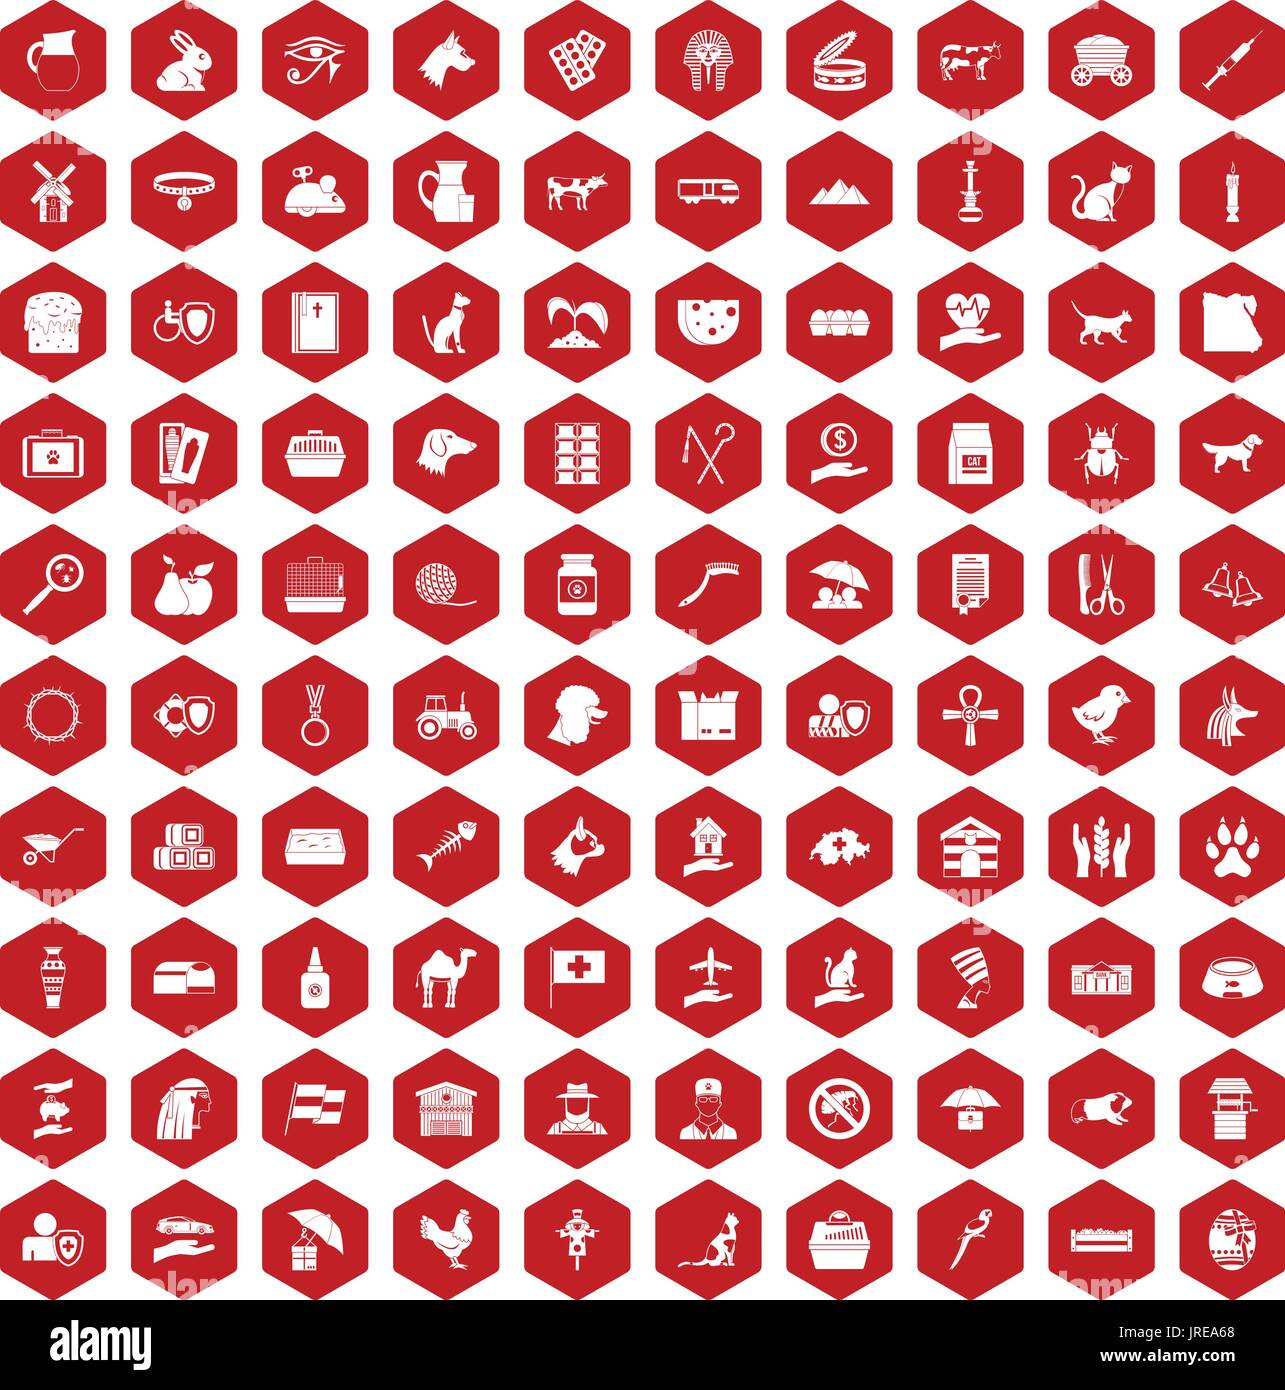 100 pets icons hexagon red - Stock Image